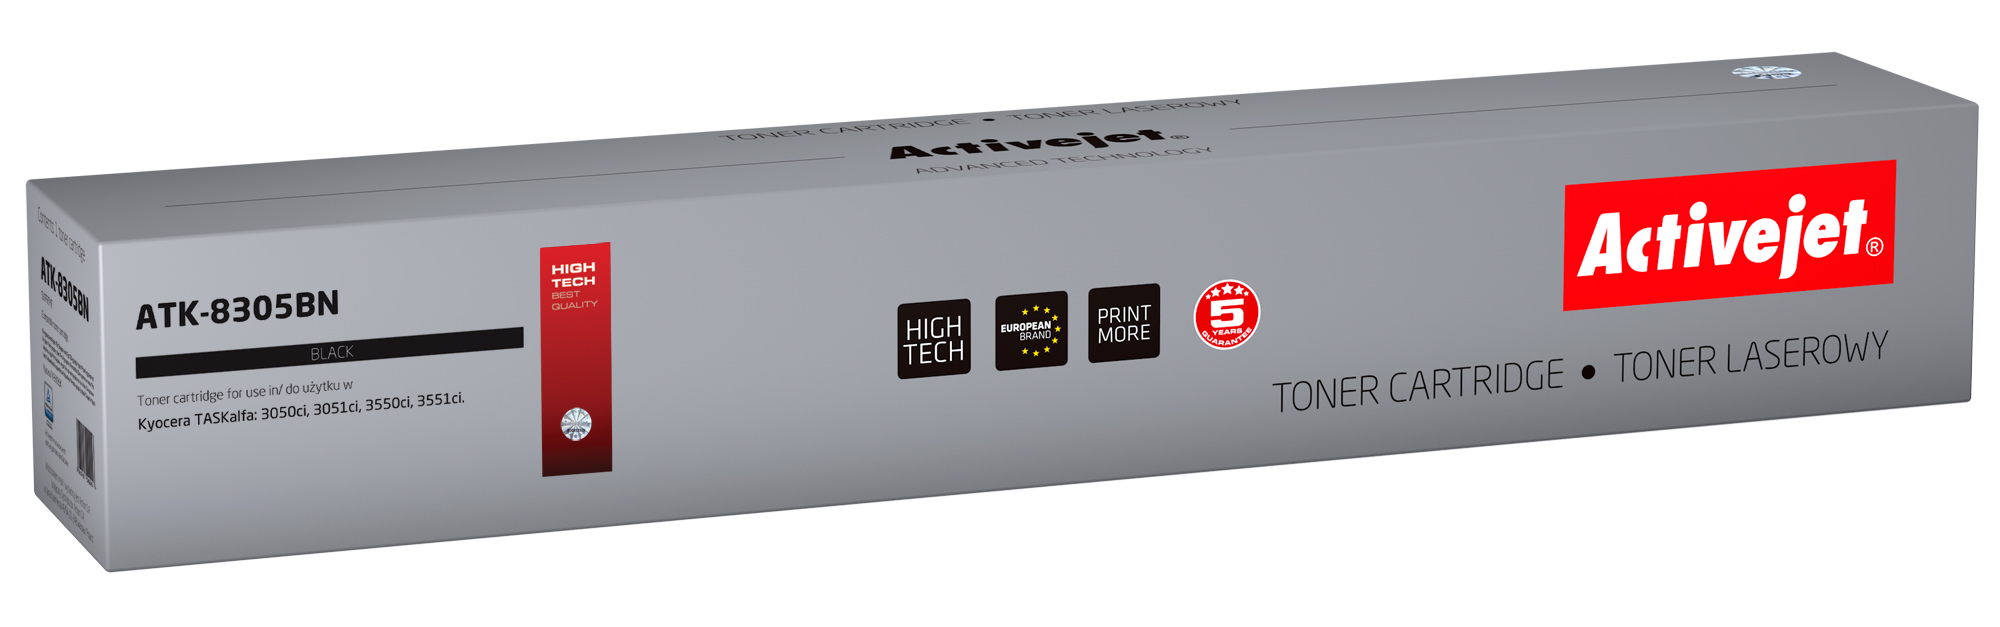 ActiveJet toner do Kyocera TK-8305BK new ATK-8305BN